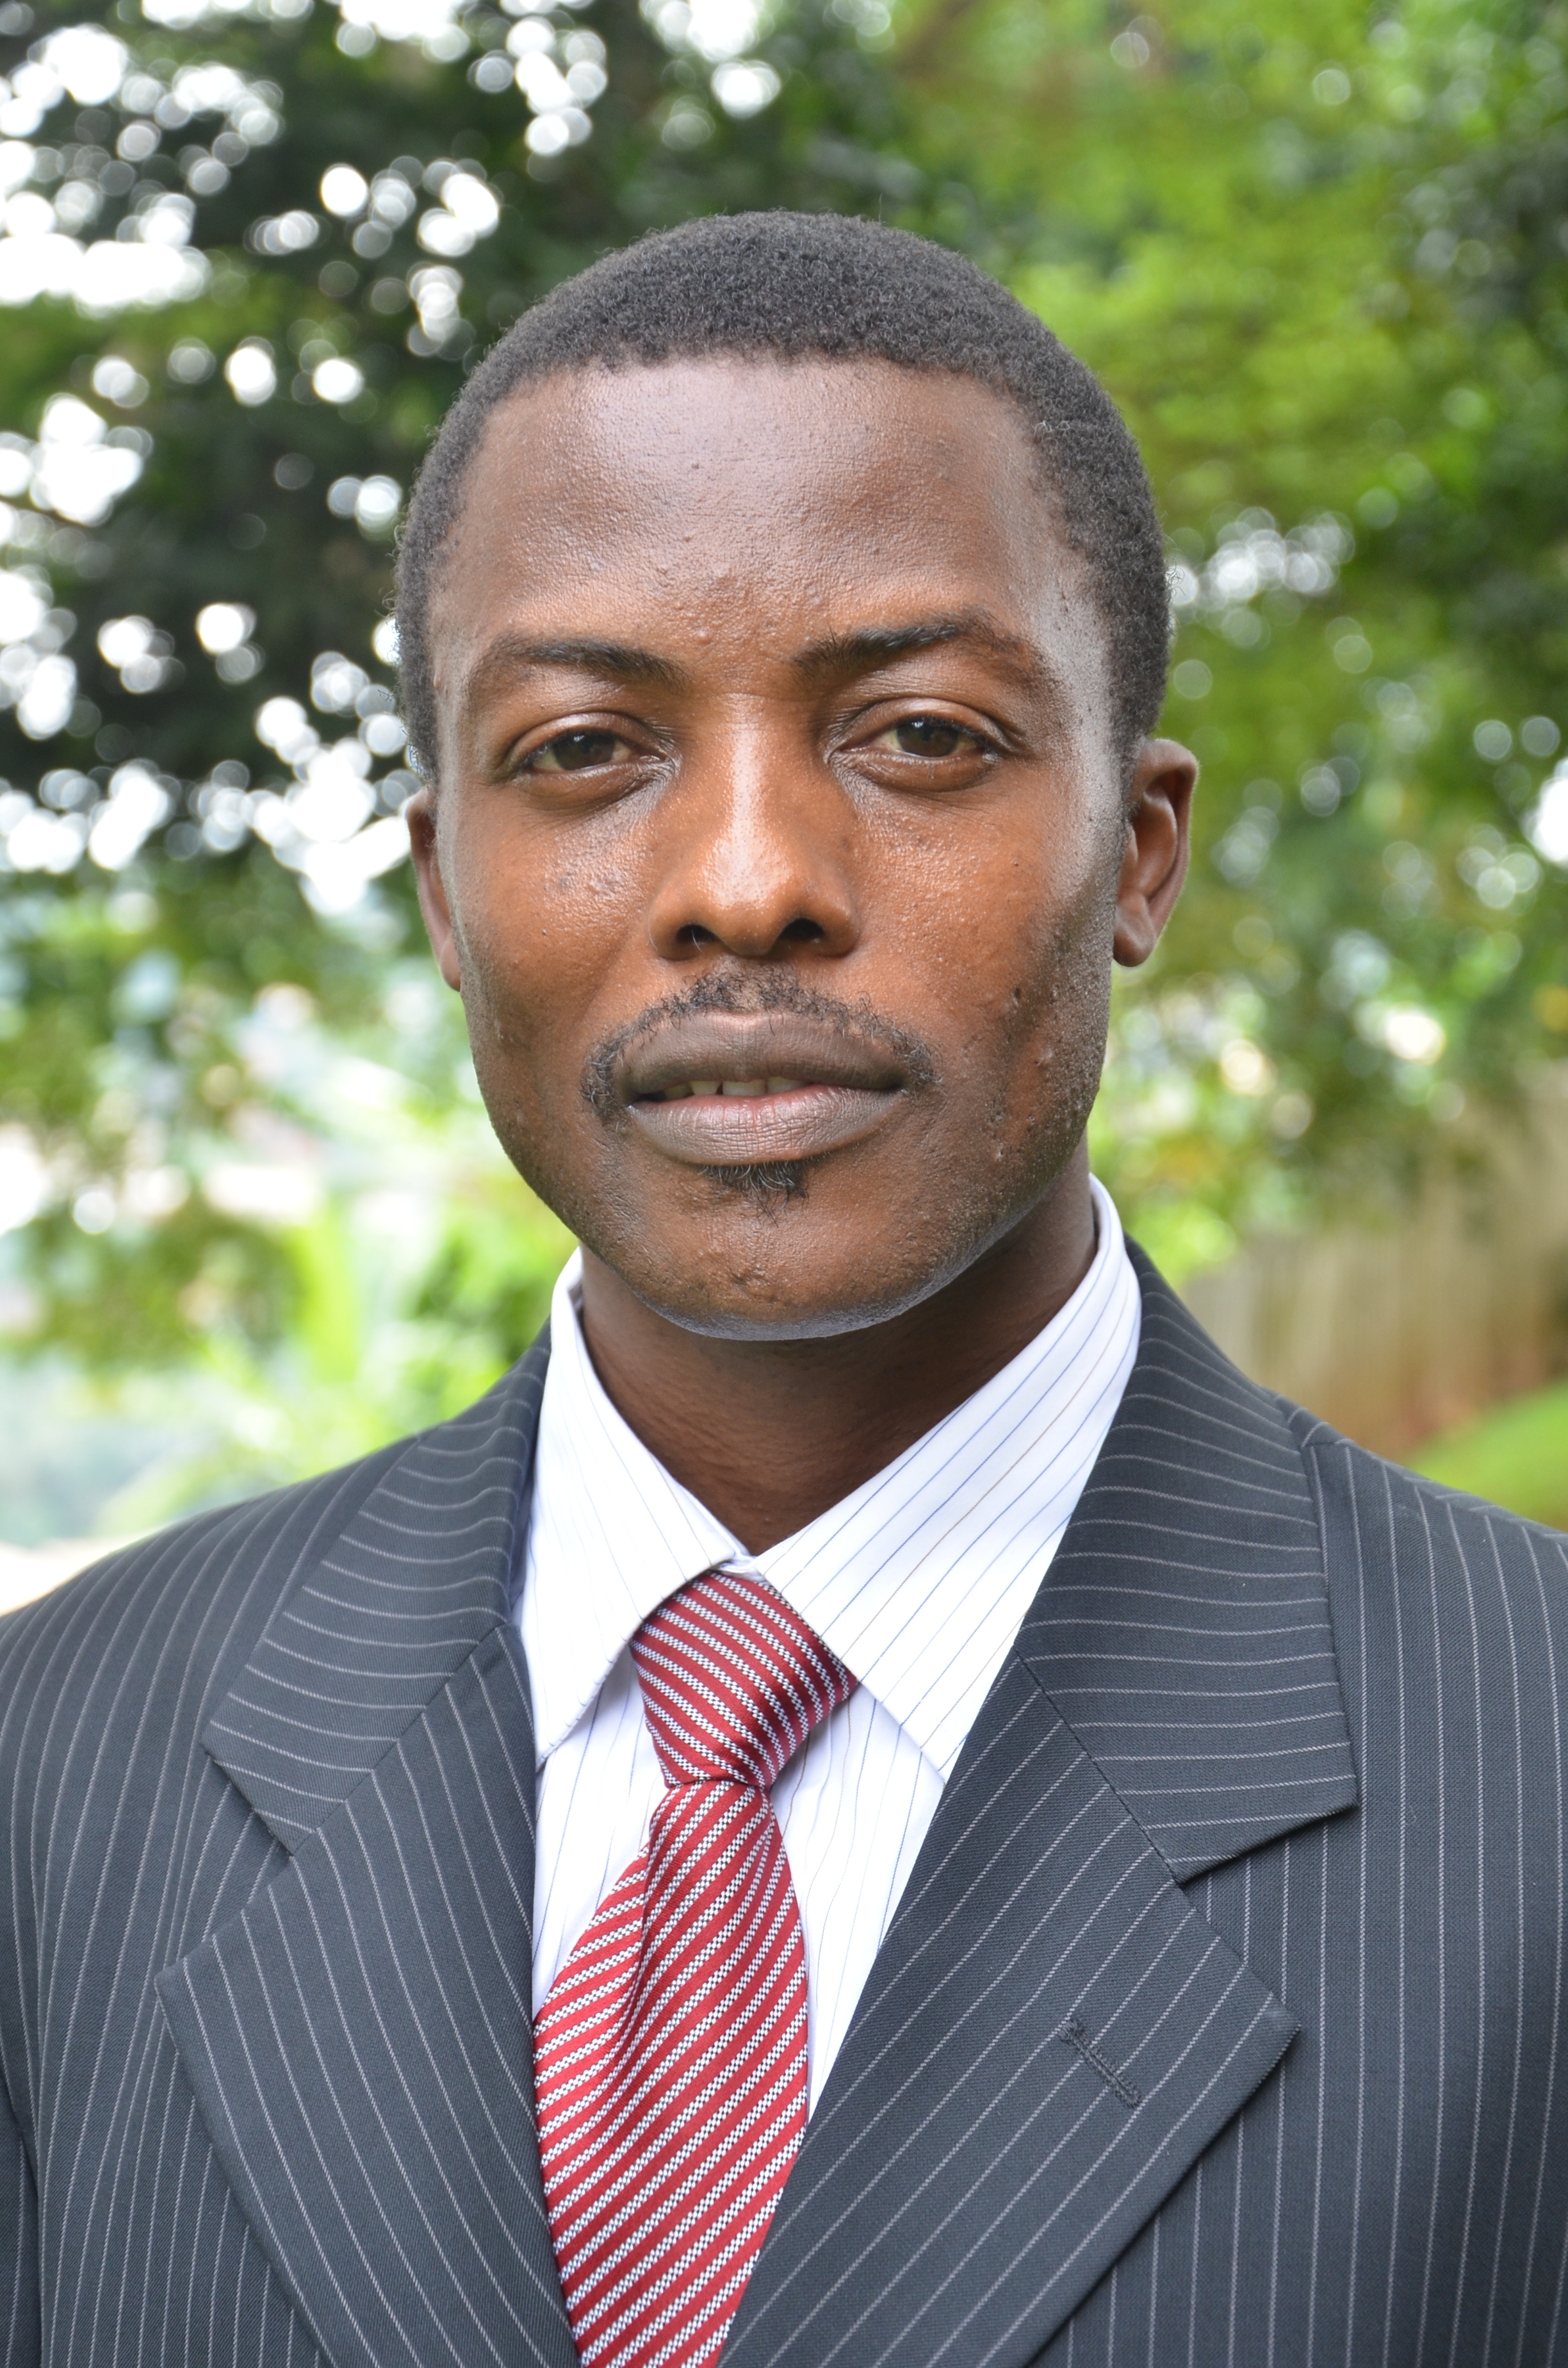 Adder Abel Gwoda, Ph. D., is       Vice-Dean in charge of Programming and Academic Affairs and Faculty of Letters and Social Sciences at the University of Maroua/Cameroon   Blog (in French):  http://gwoda.canalblog.com